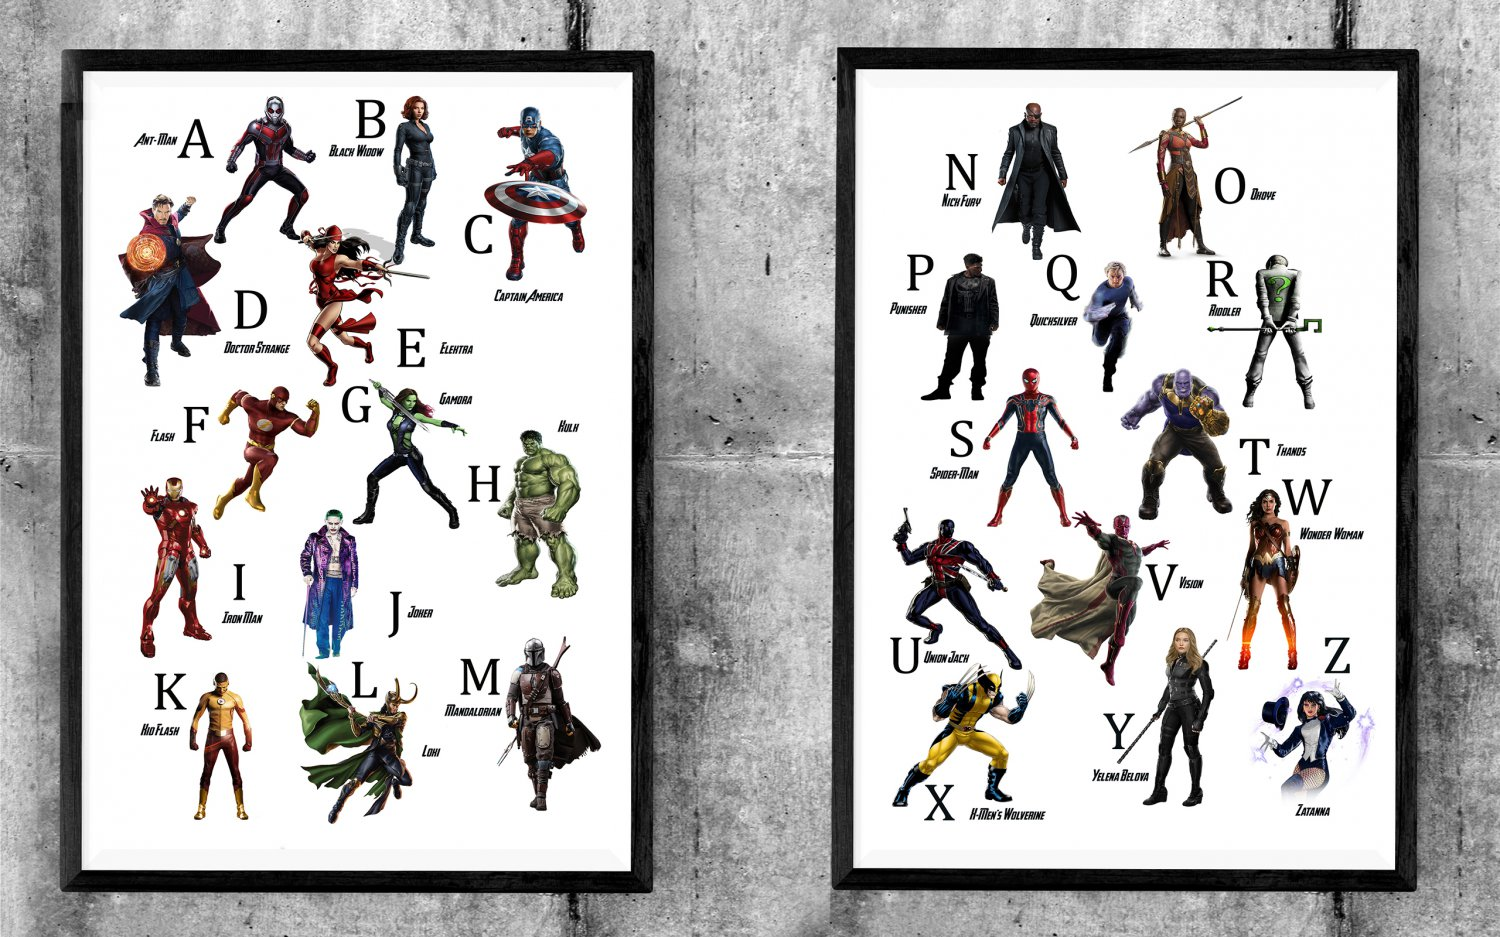 Alphabet, Superhero and Villain, Avengers Endgame, Iron Man, 18x28 inches Bundle of 2 Canvases